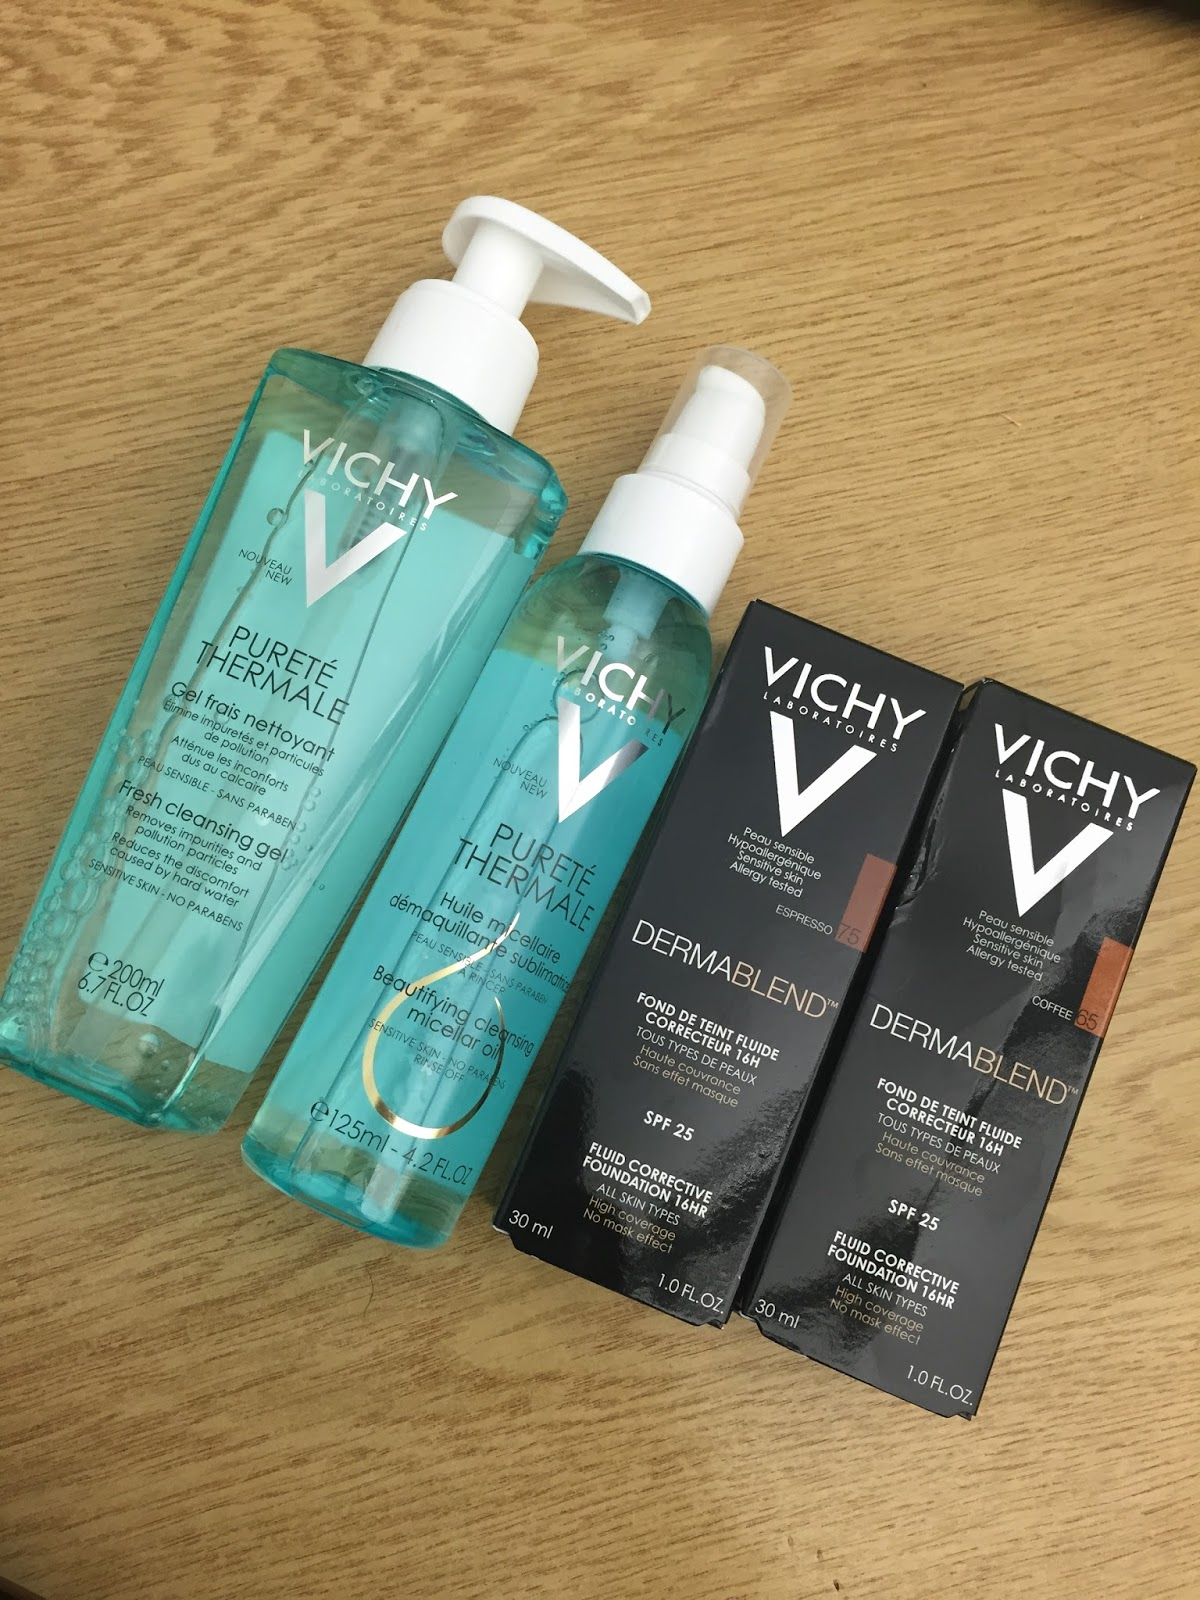 Vichy Dermablend Fluid Corrective Foundation Coffee Espresso Vichy Purete Thermale Beautifying Cleansing Micellar Oil Purete Thermale Fresh Cleansing Gel Review WoC nataliekayo discoveriesofself